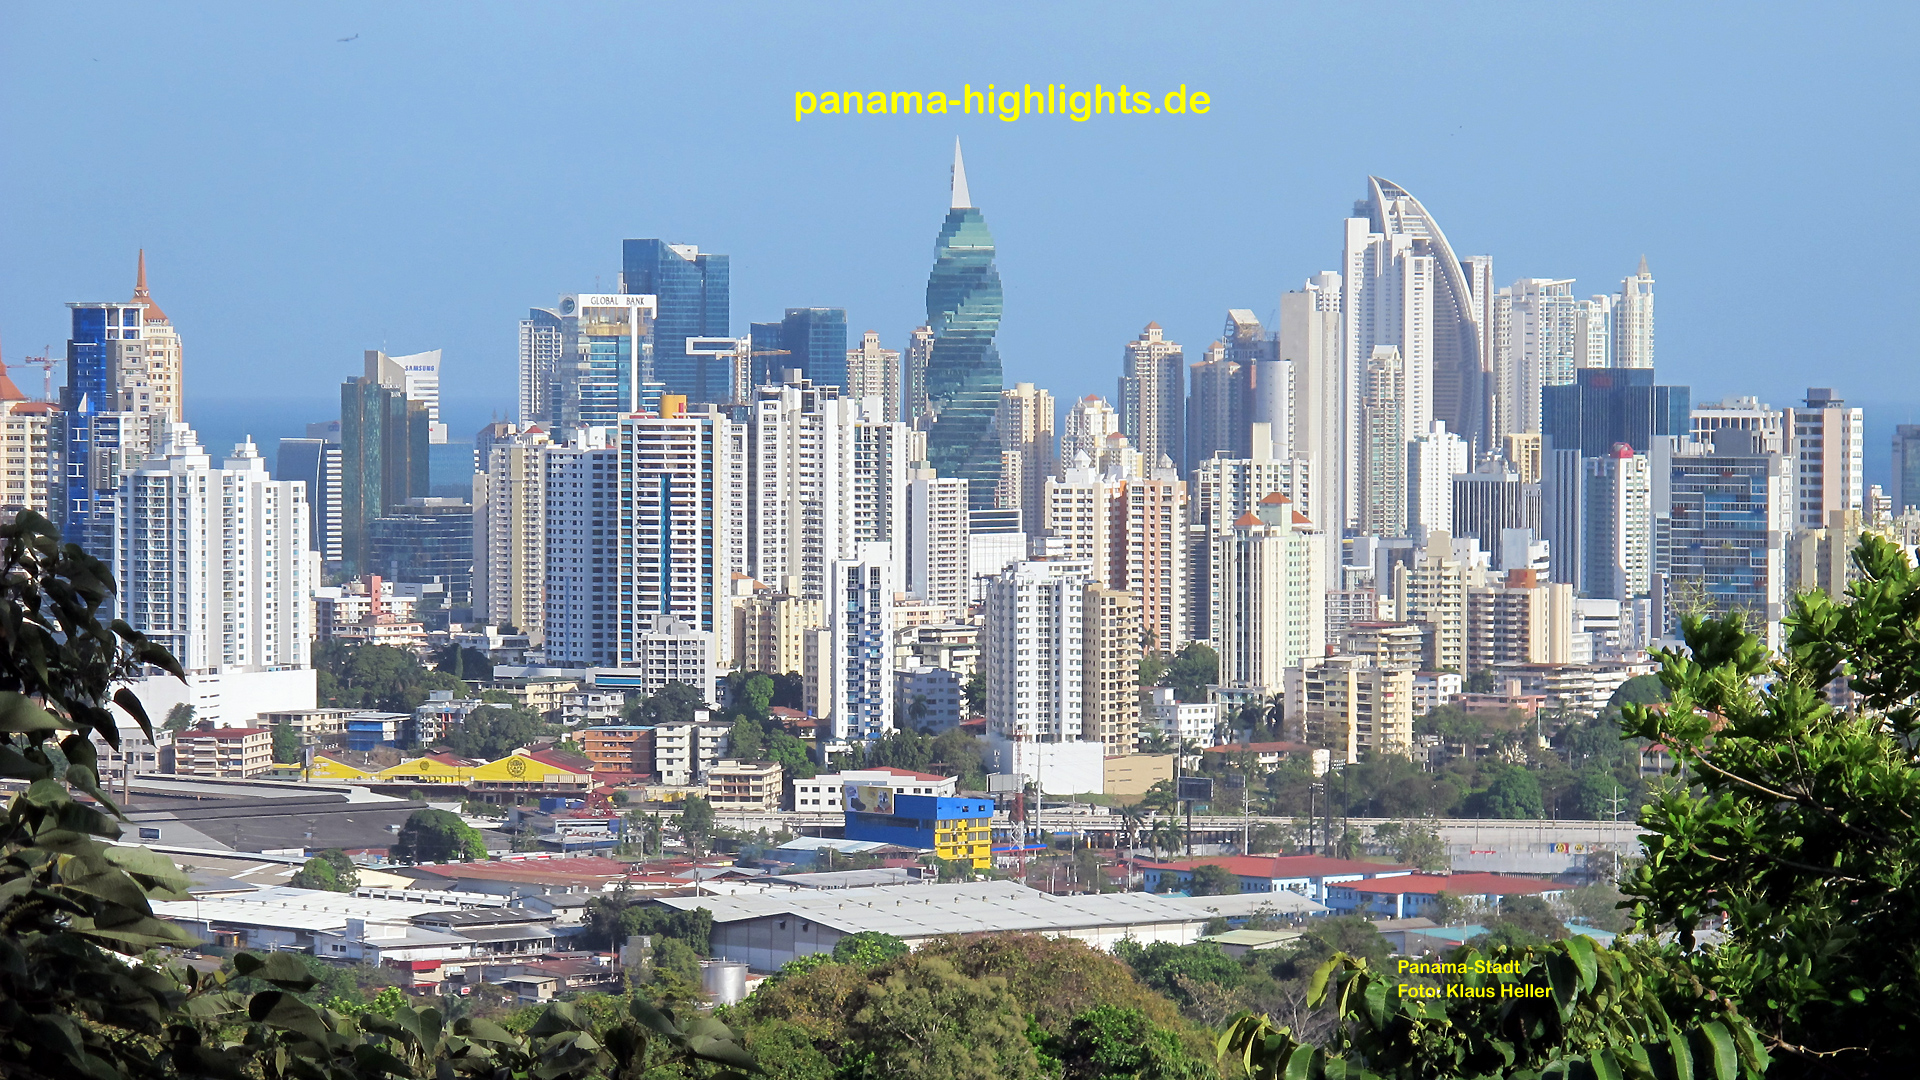 Panama Awesome Photo | 38952845 Panama Wallpapers, 1920x1080 px